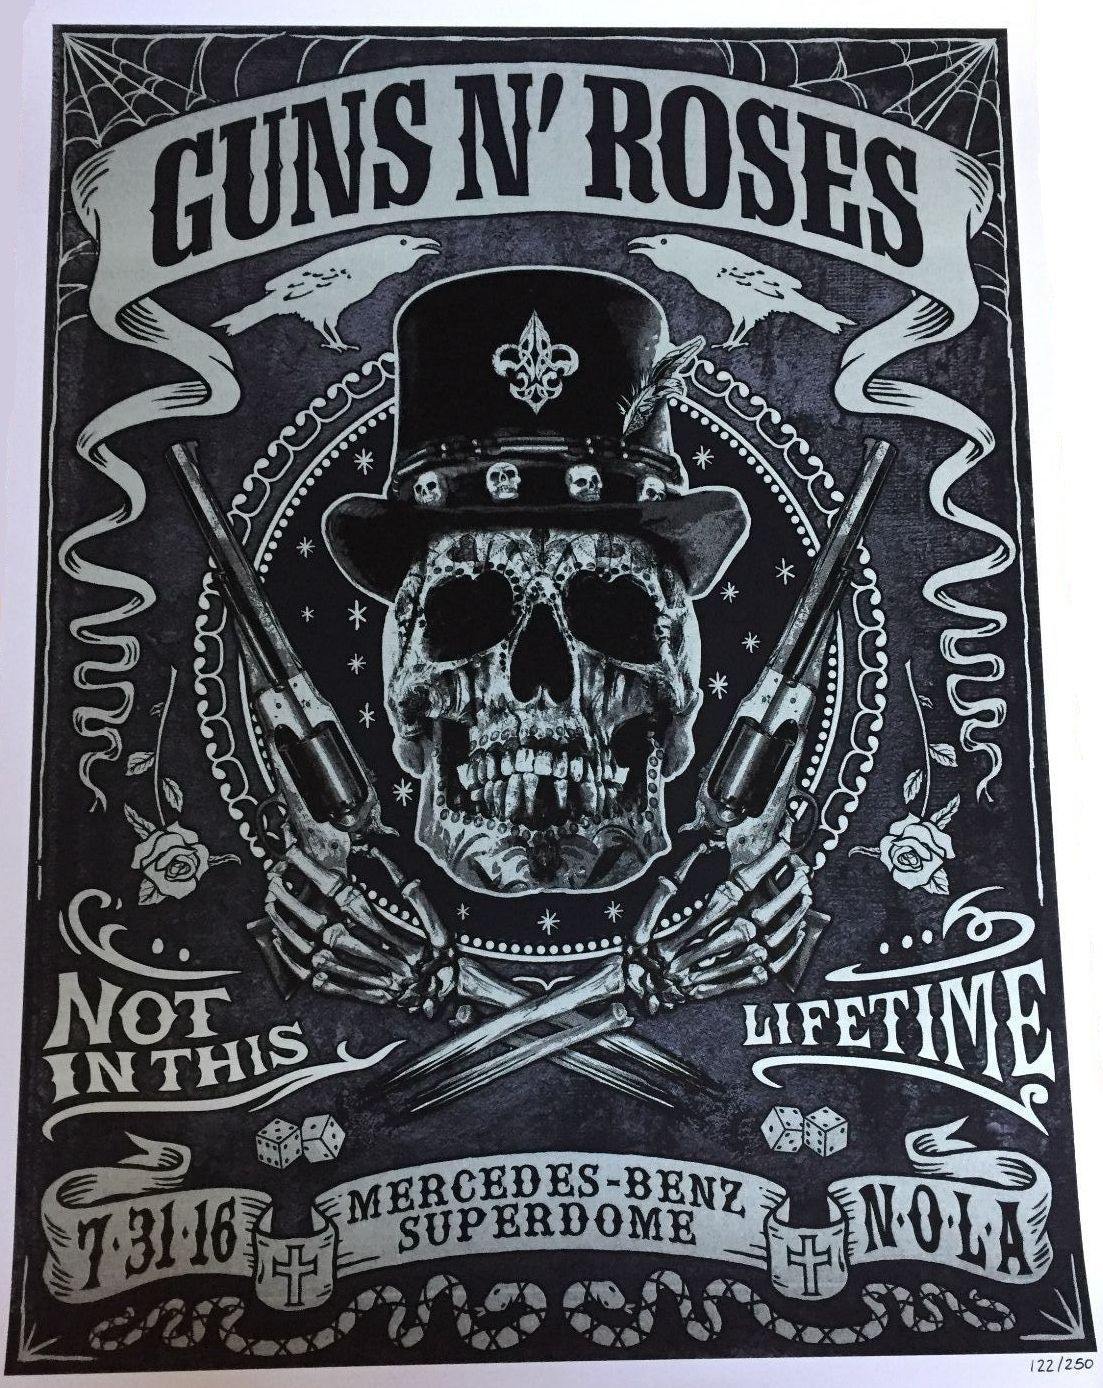 Pin by Blakkbutterfly on Guns & Roses | Rock band posters